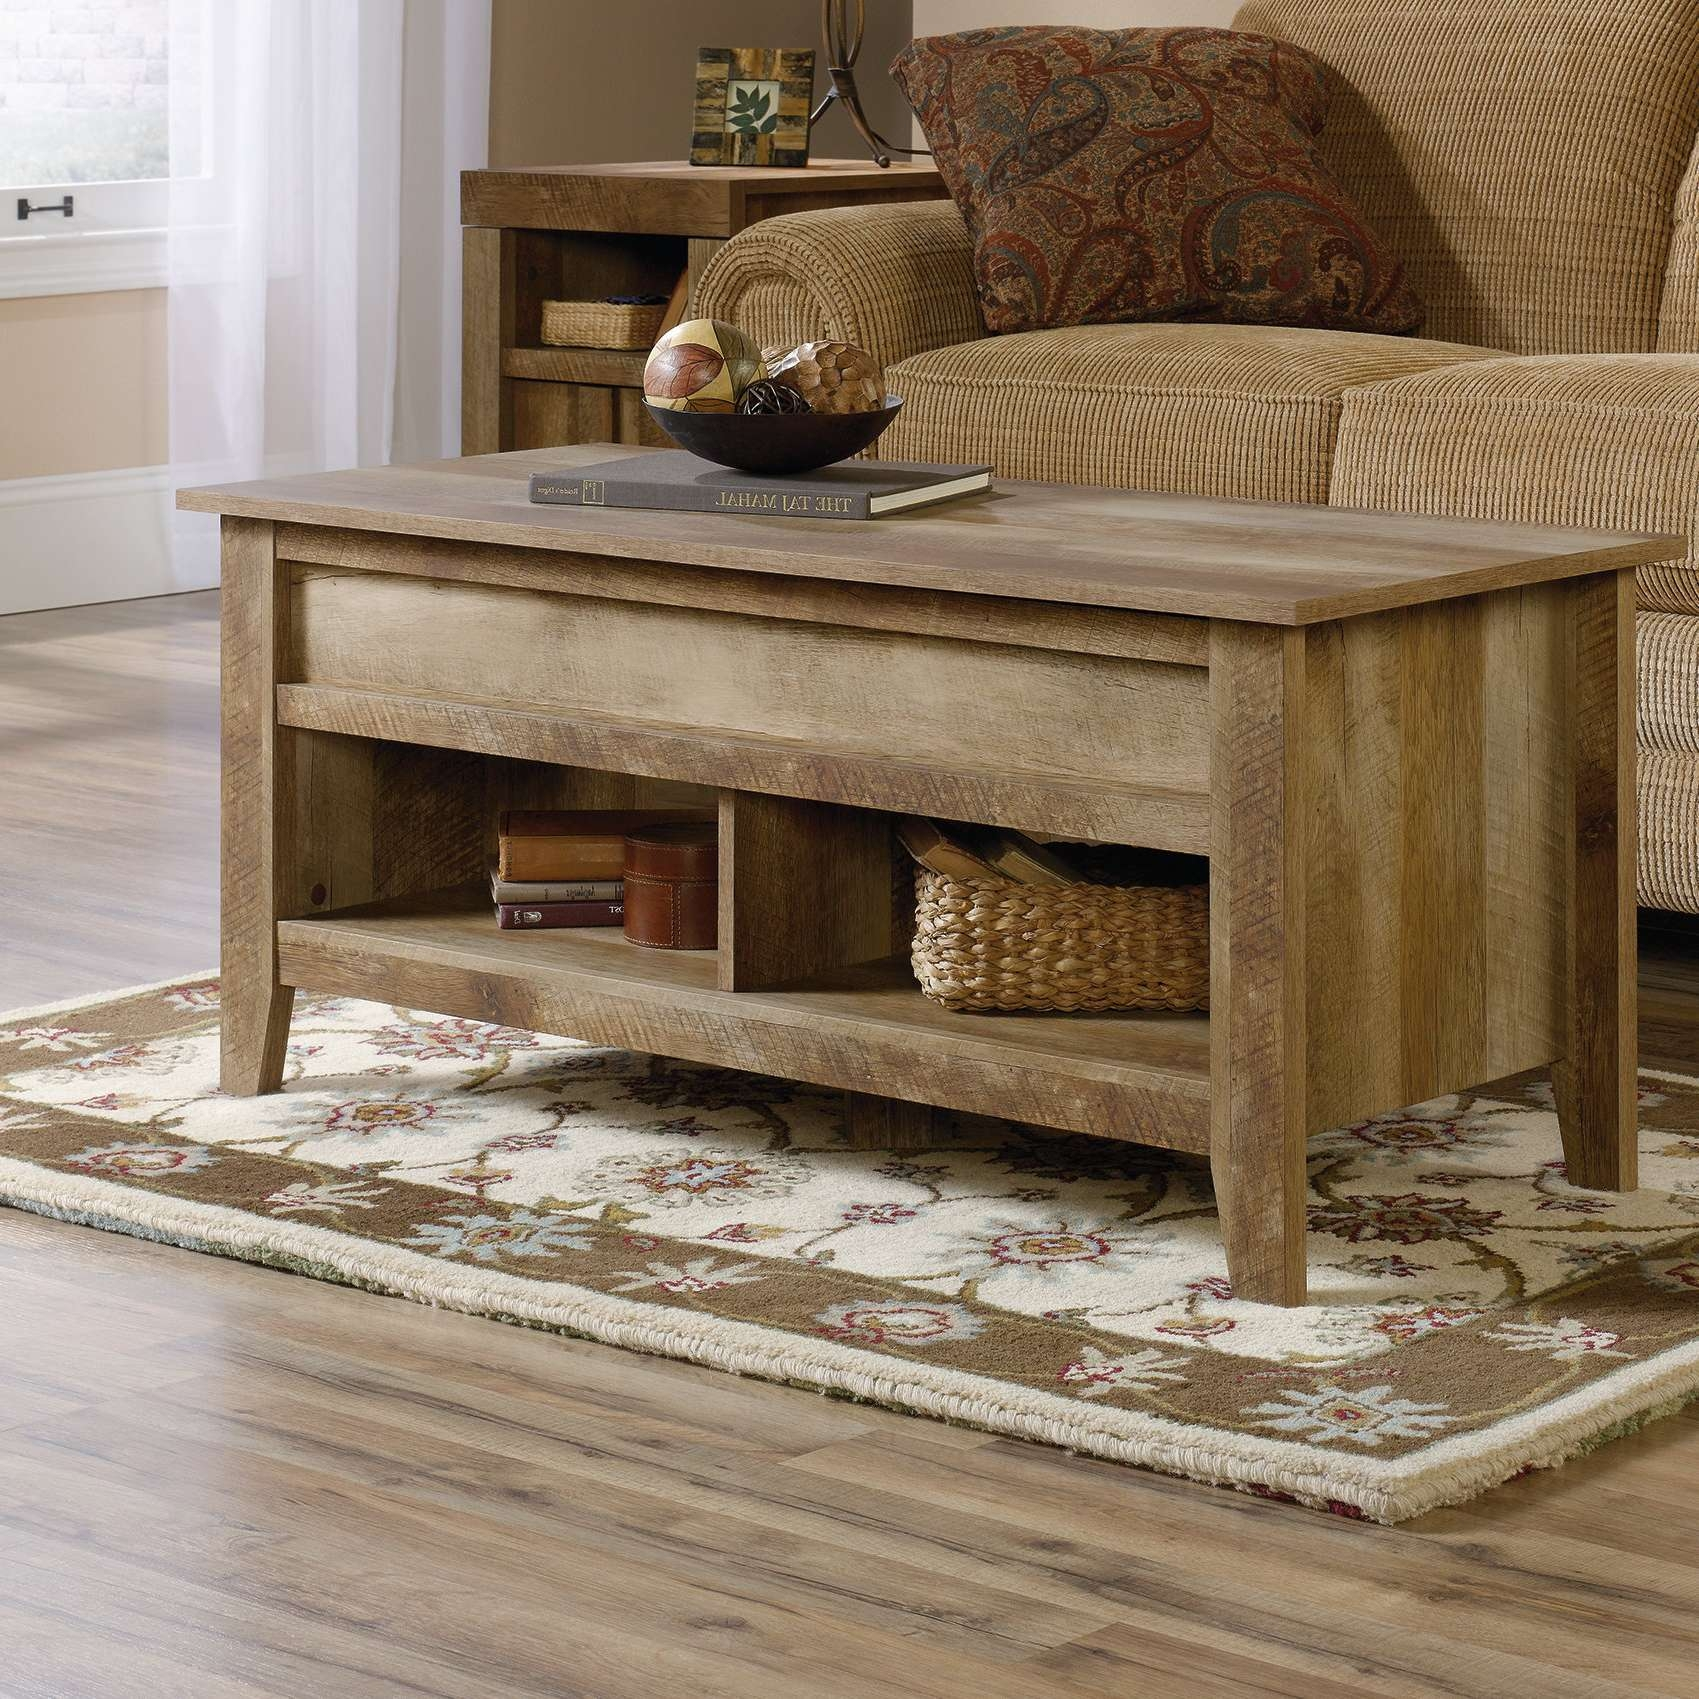 Wayfair Inside Popular Raisable Coffee Tables (View 19 of 20)